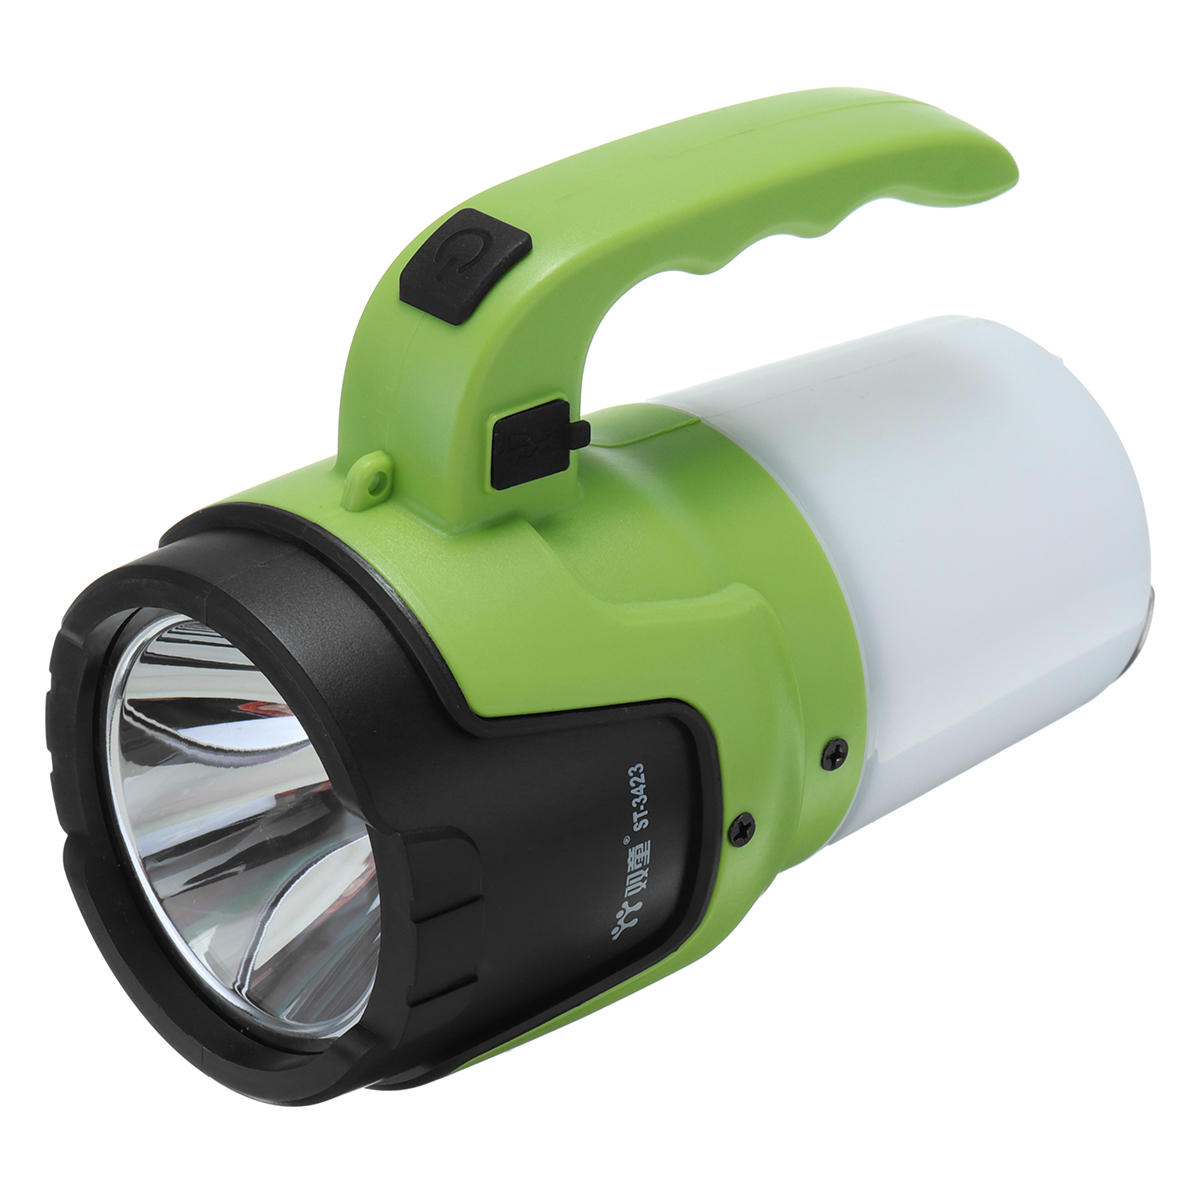 Outdoor Emergency light Strong Camping Light Flashlight USB Rechargeable Patrol Lamp